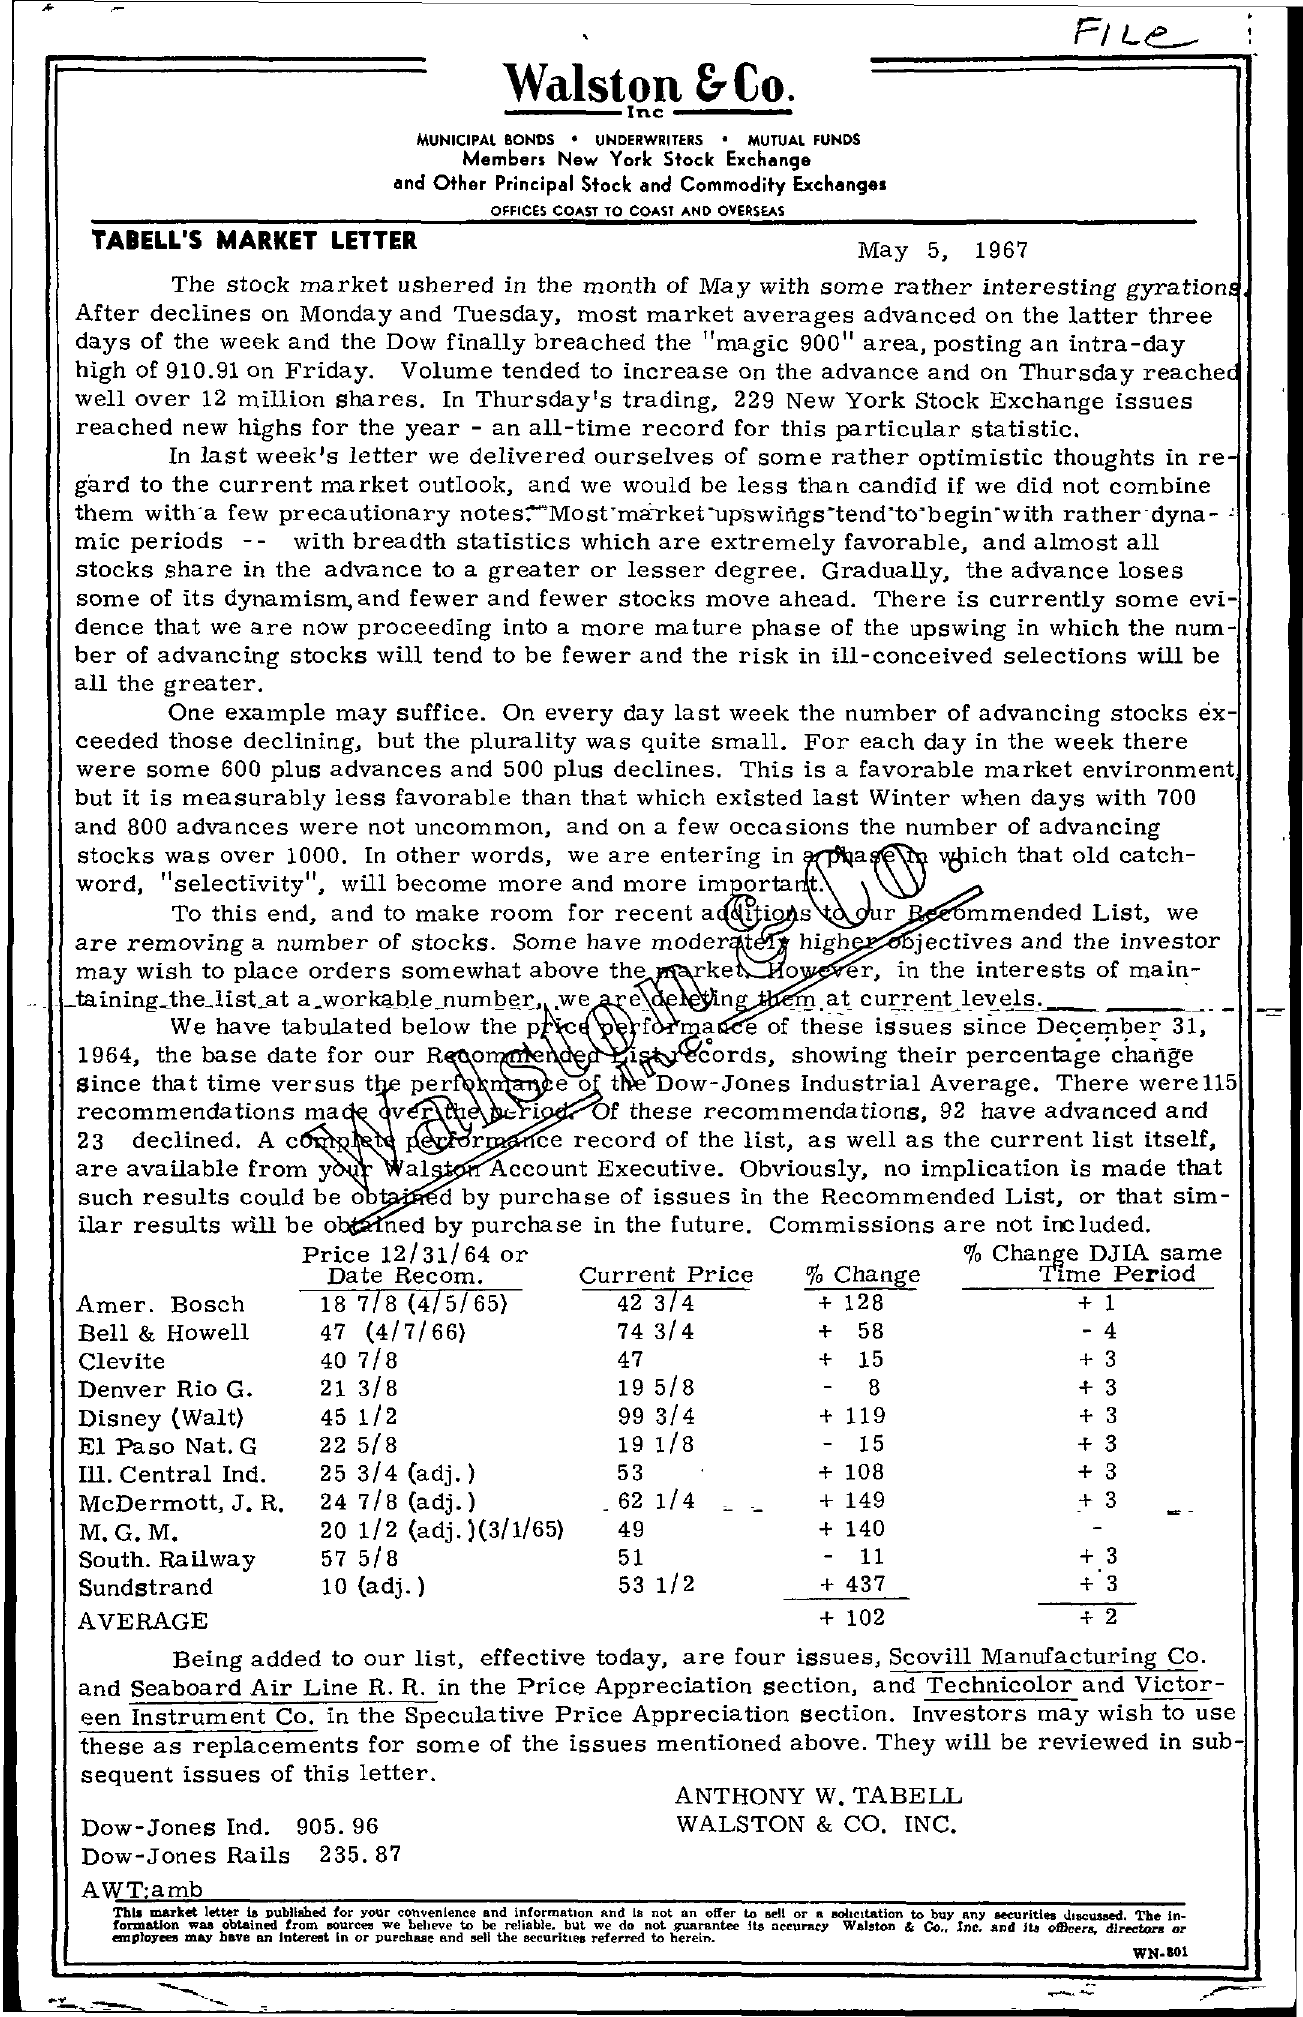 Tabell's Market Letter - May 05, 1967